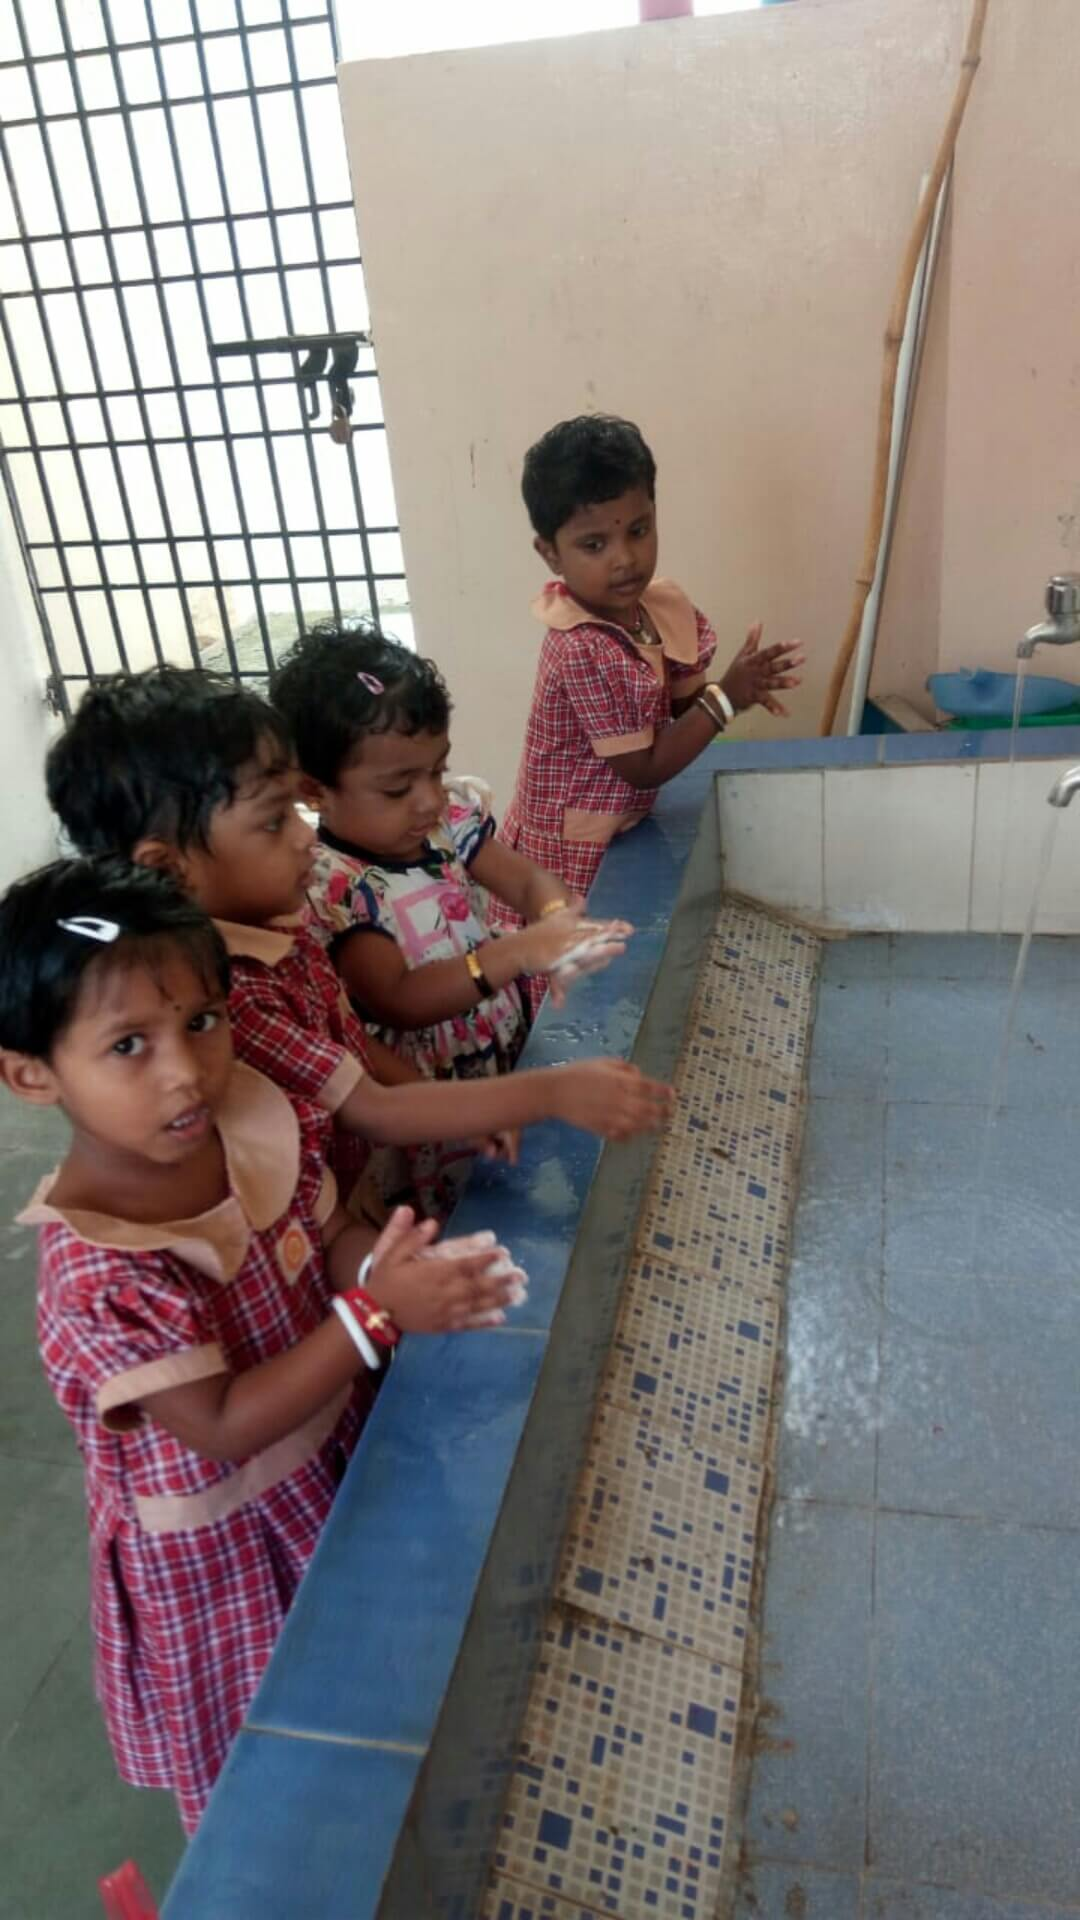 Clean hands are safe hands and we are washing hands happily...